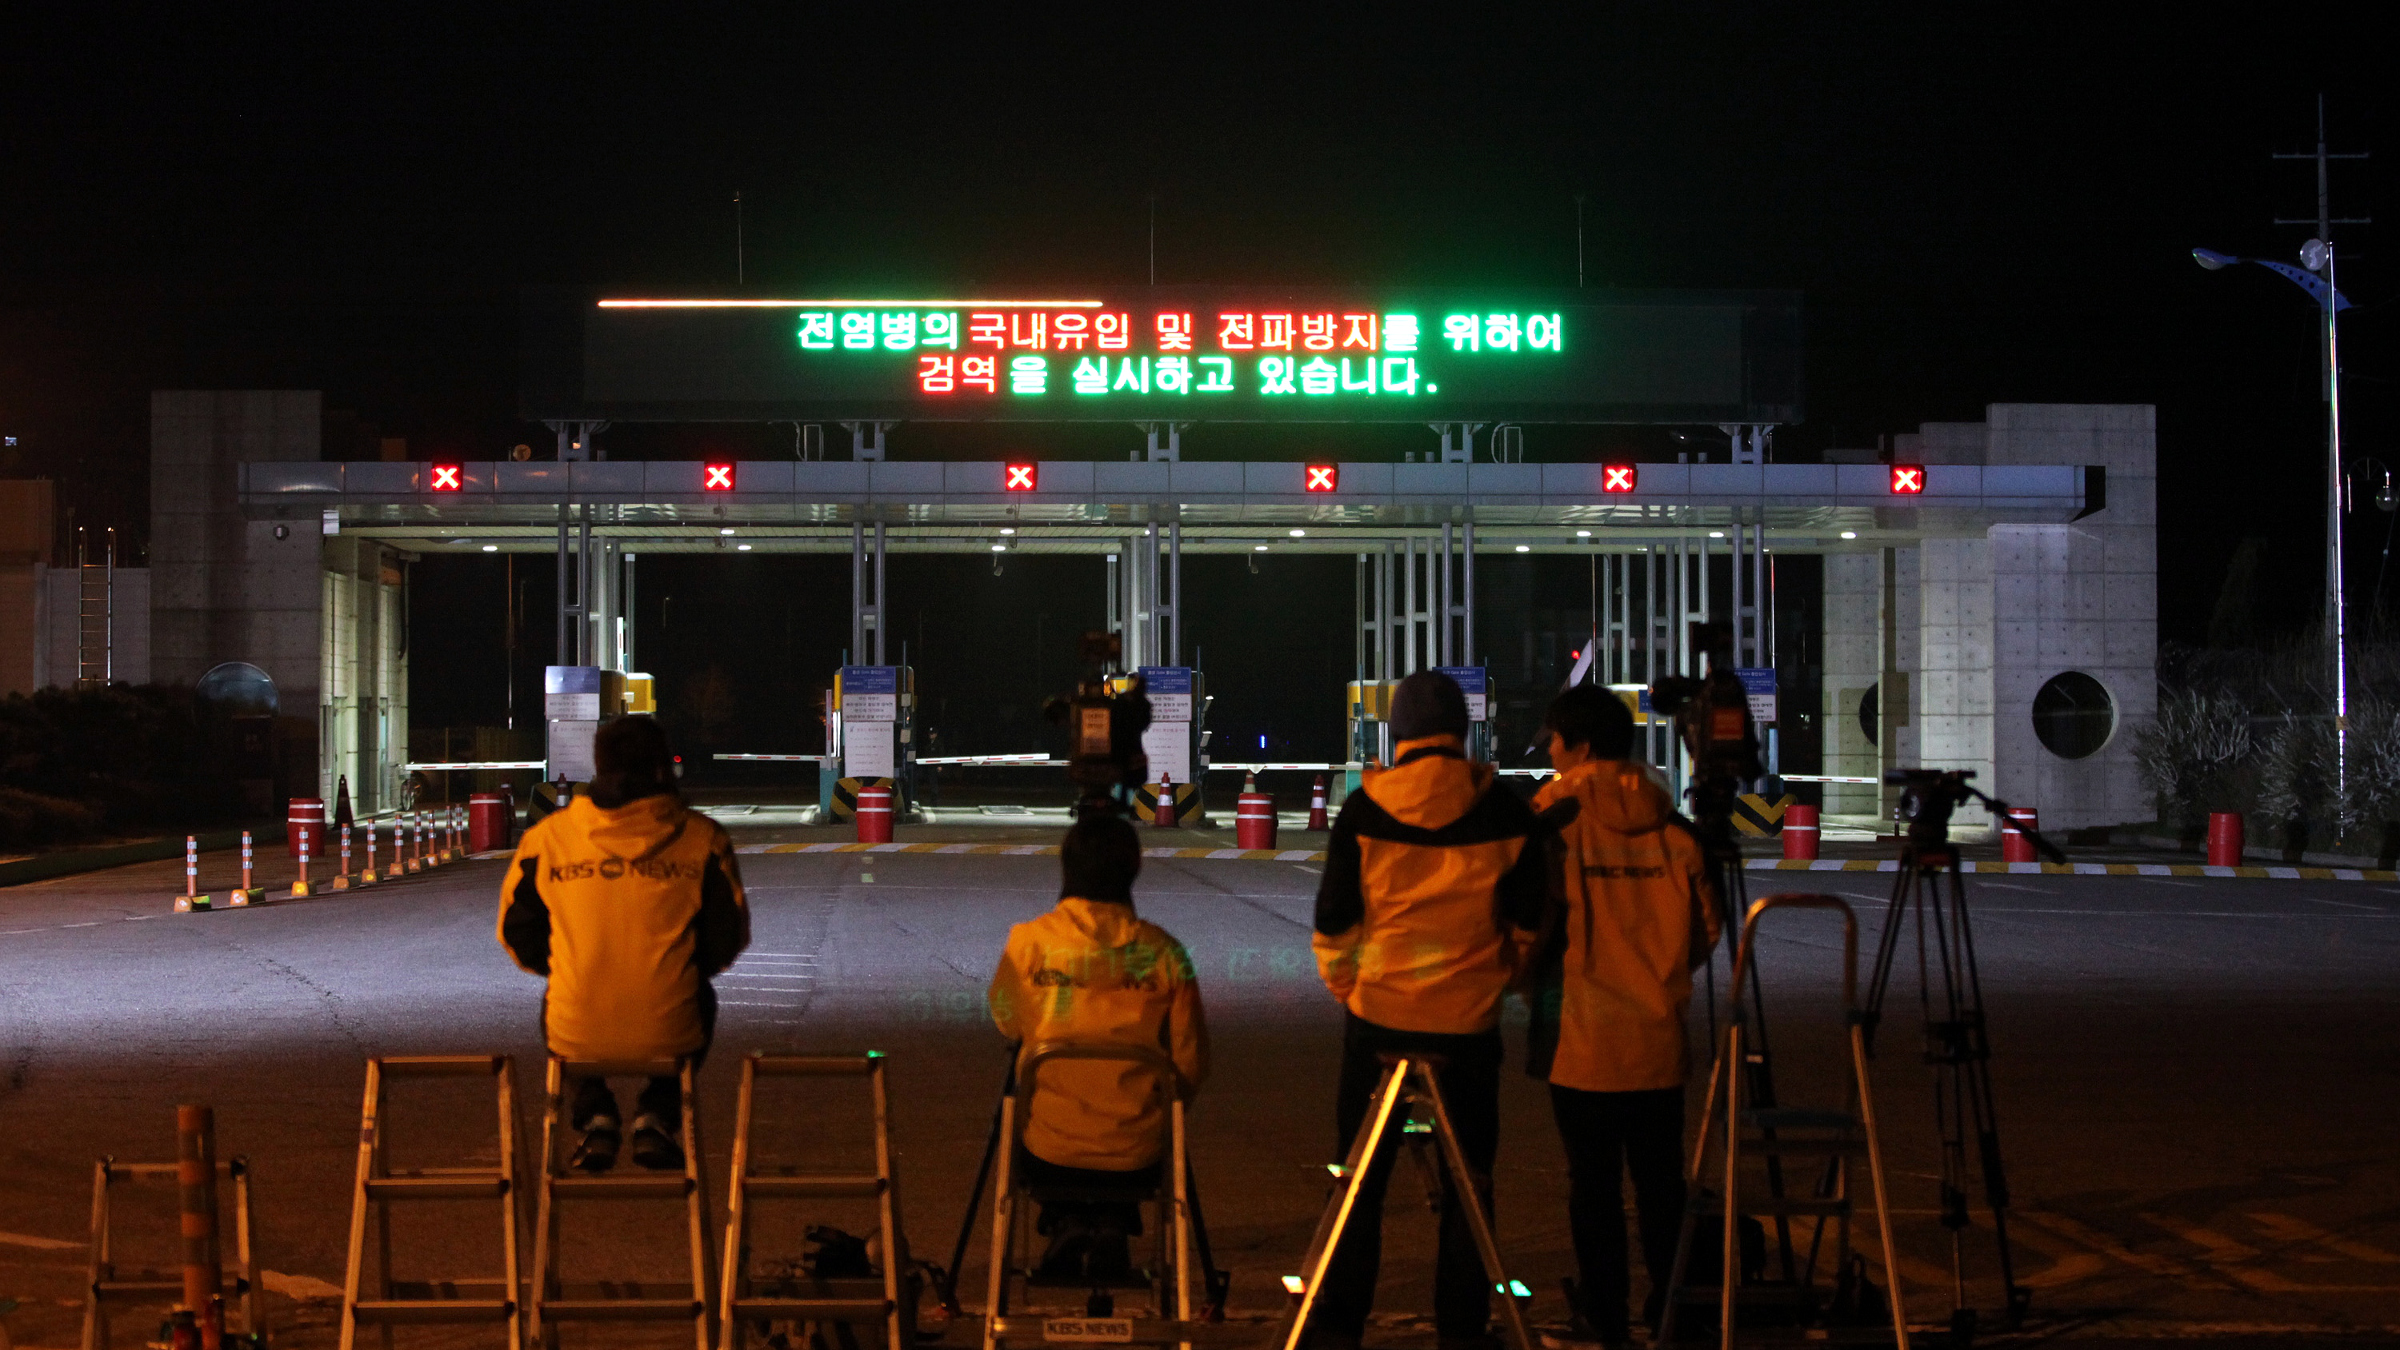 Medias wait for South Koreans returning home from North Korea's Kaesong at the customs, immigration and quarantine office near the border village of Panmunjom, that separates the two Koreas, in Paju, north of Seoul, South Korea, Monday, April 29, 2013.